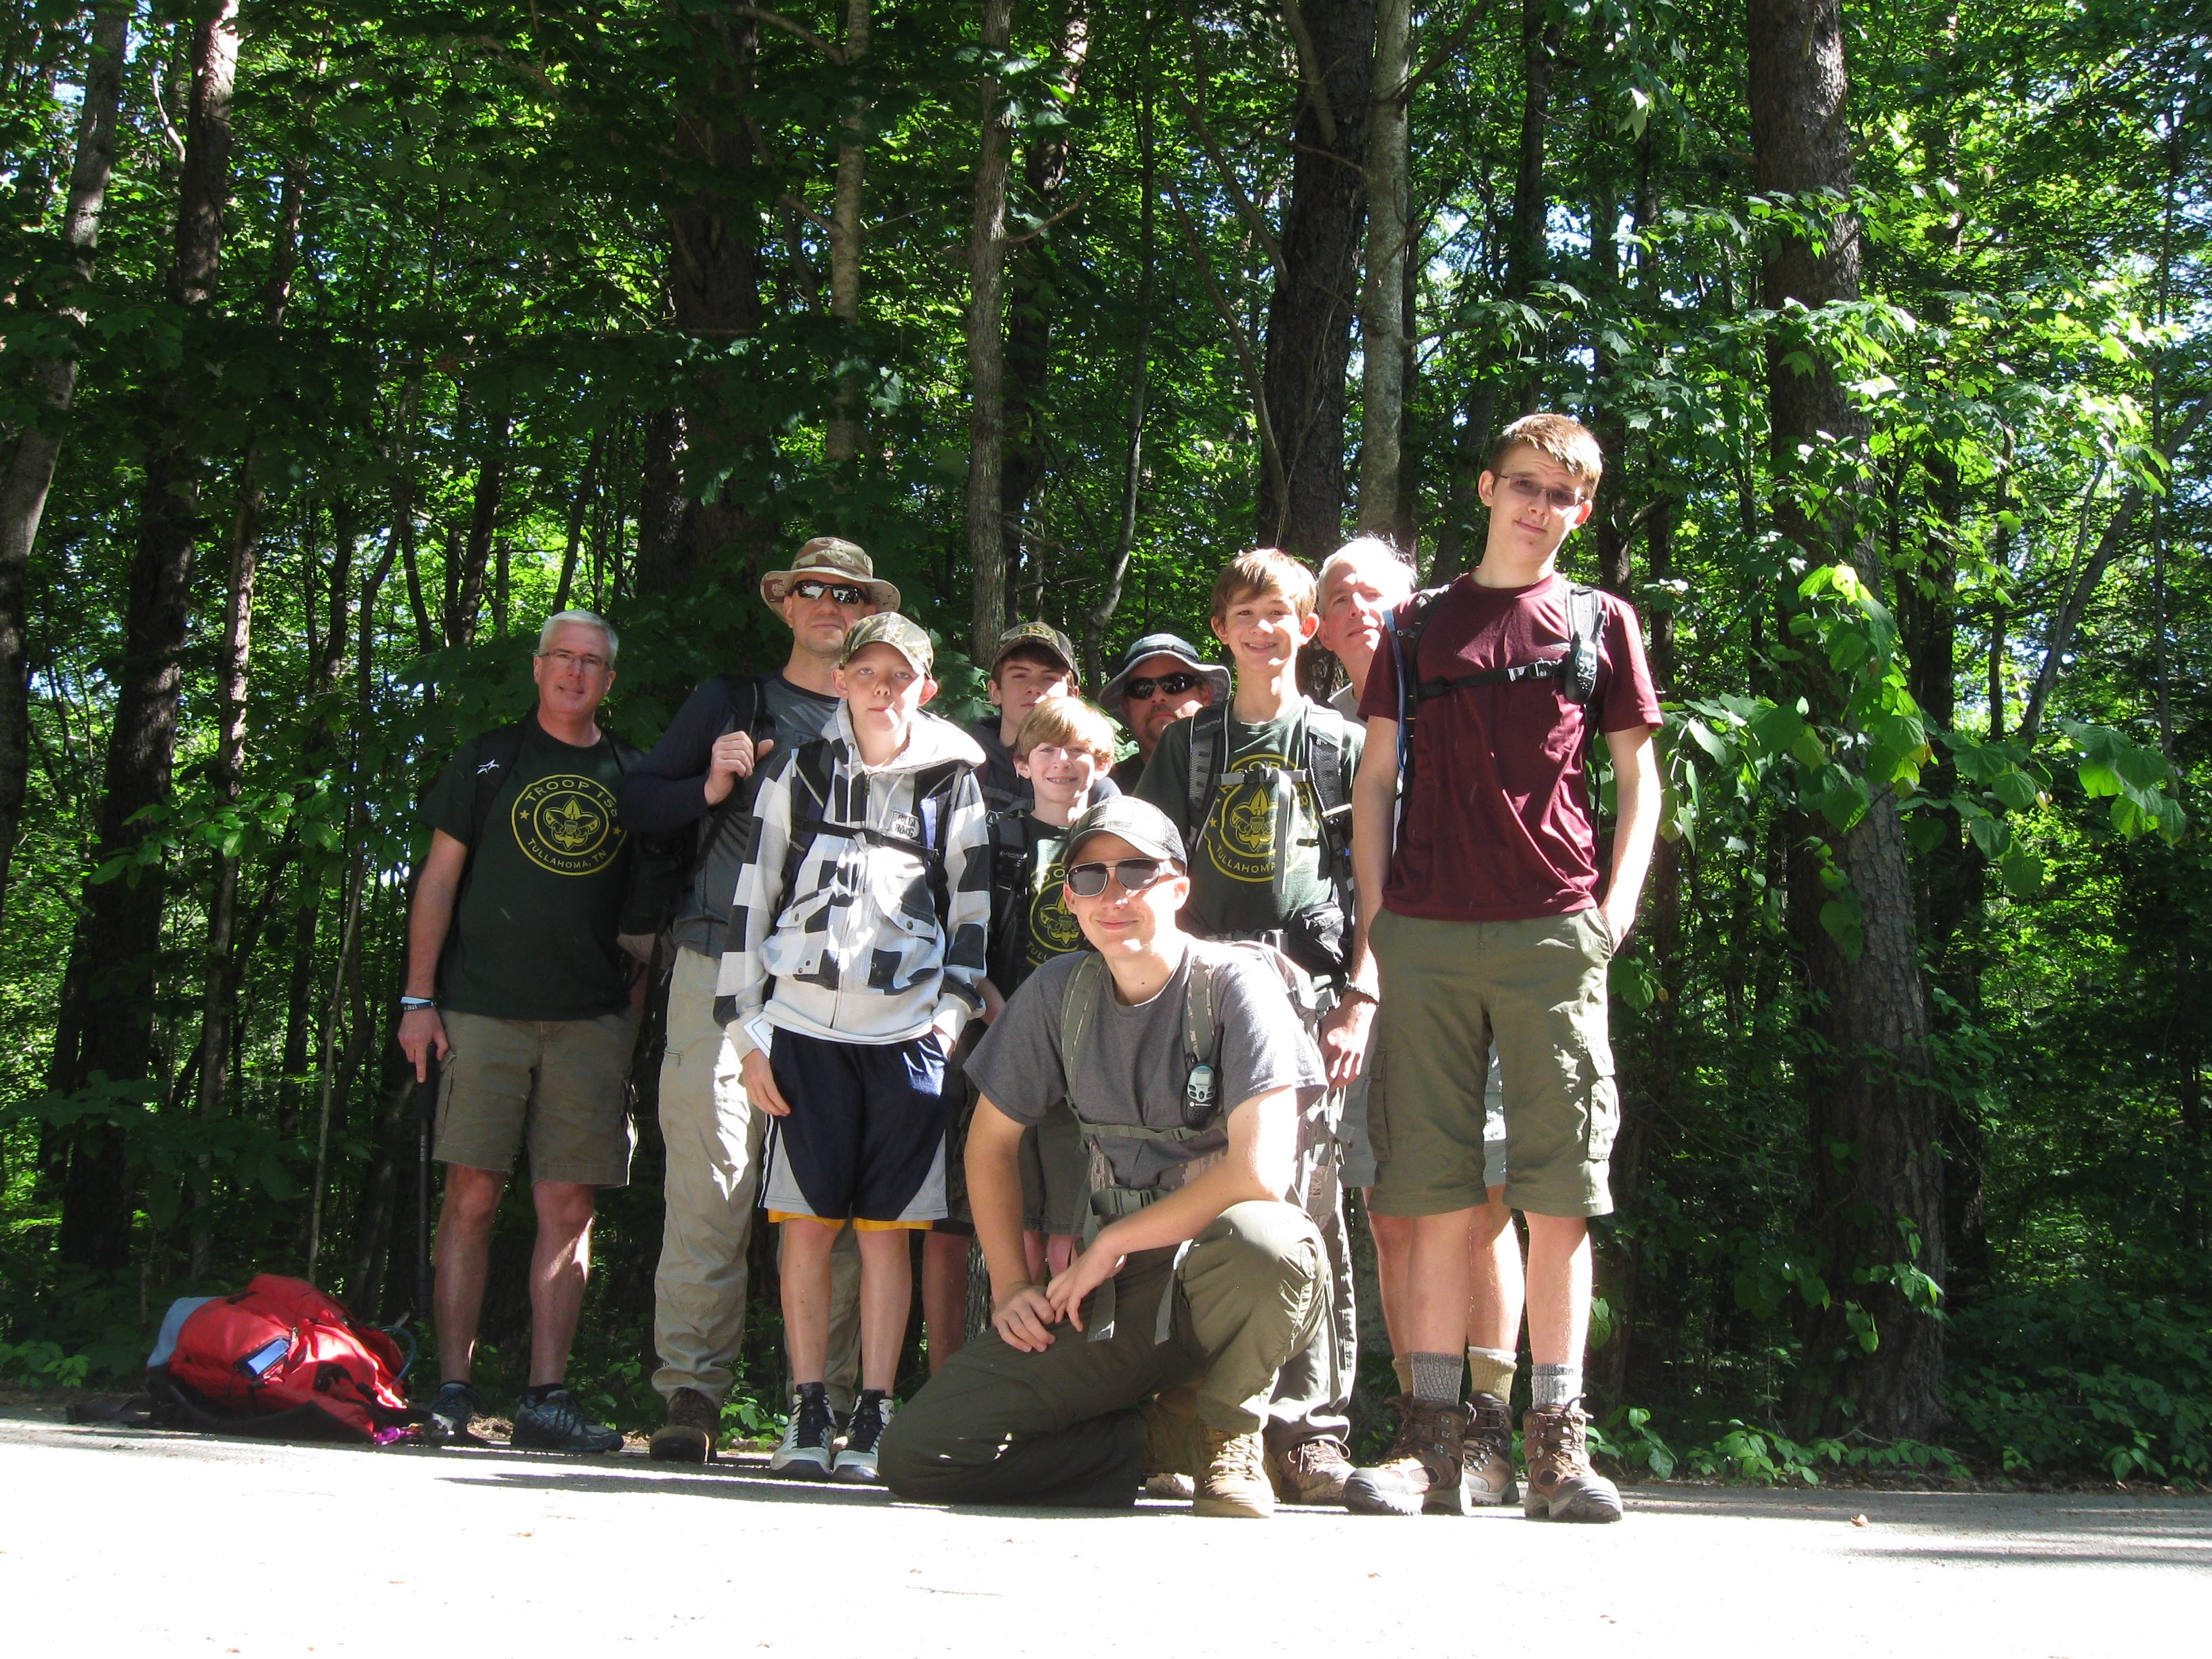 Trip length was 8 miles. Attending were Ben and Alan Horrocks Bryan and Lenny Perry Calem Levi Matthews and Michael Brown and Brian and Stuart Coulter. & May 23rd Dayhike to Stone Door - BSA Troop 158